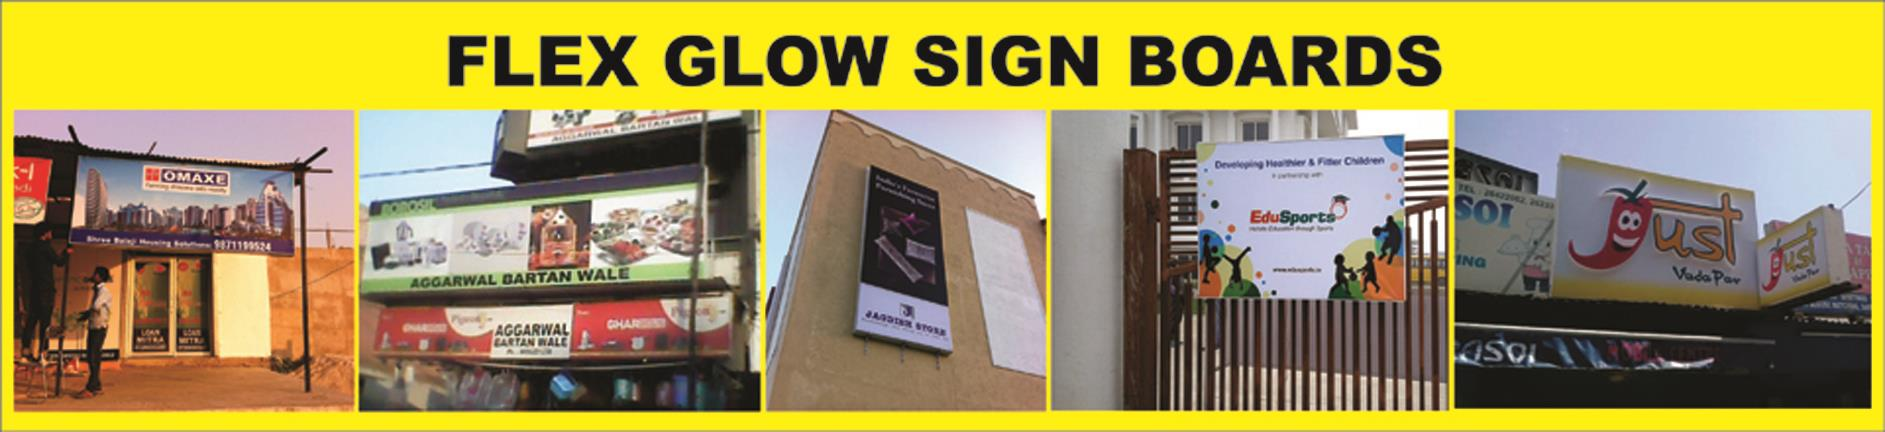 FLEX GLOW SIGN BOARDS AND FLEX  SIGNAGES:  ARE YOU LOOKING FOR  FLEX GLOW SIGN BOARDS:  WE AT DIMENSIONS INDIA 8860908890 ARE THE LEADING MANUFACTURERS IN DELHI DELHI NCR, :    - by LED SIGN BOARD BY DIMENSIONS INDIA, Delhi